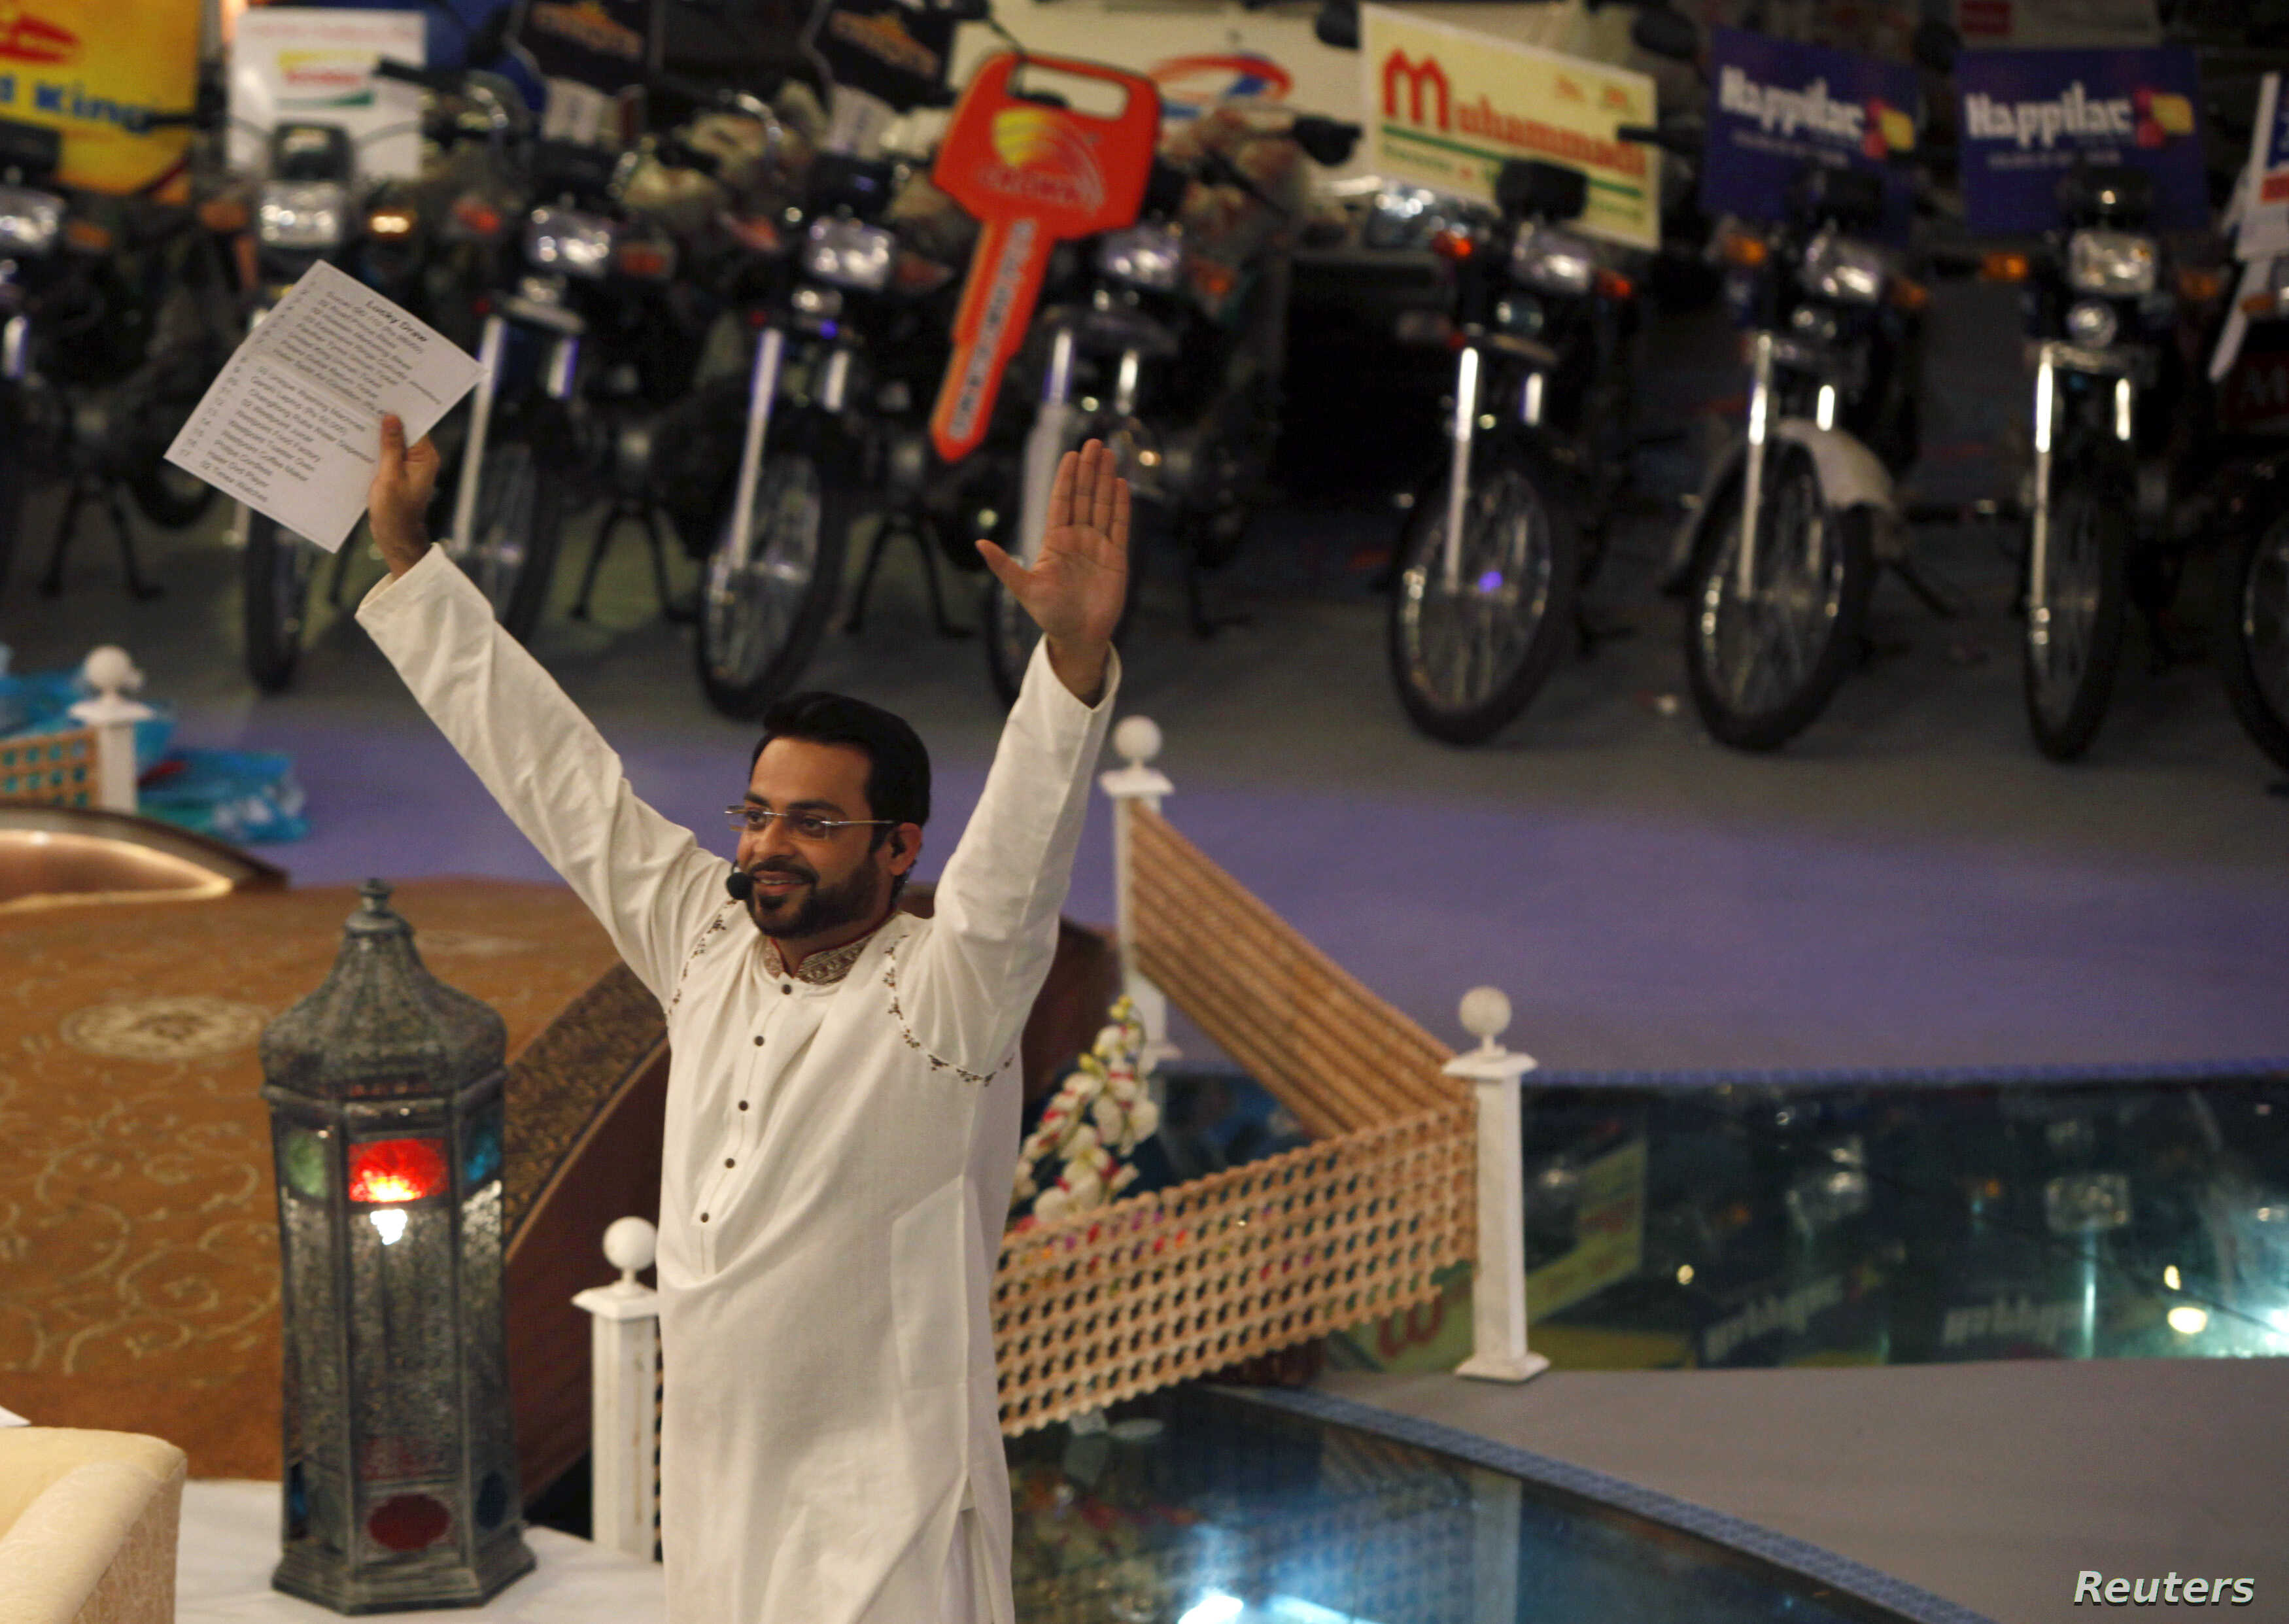 Pakistan's Most Popular TV Station Forced Off Air Amid